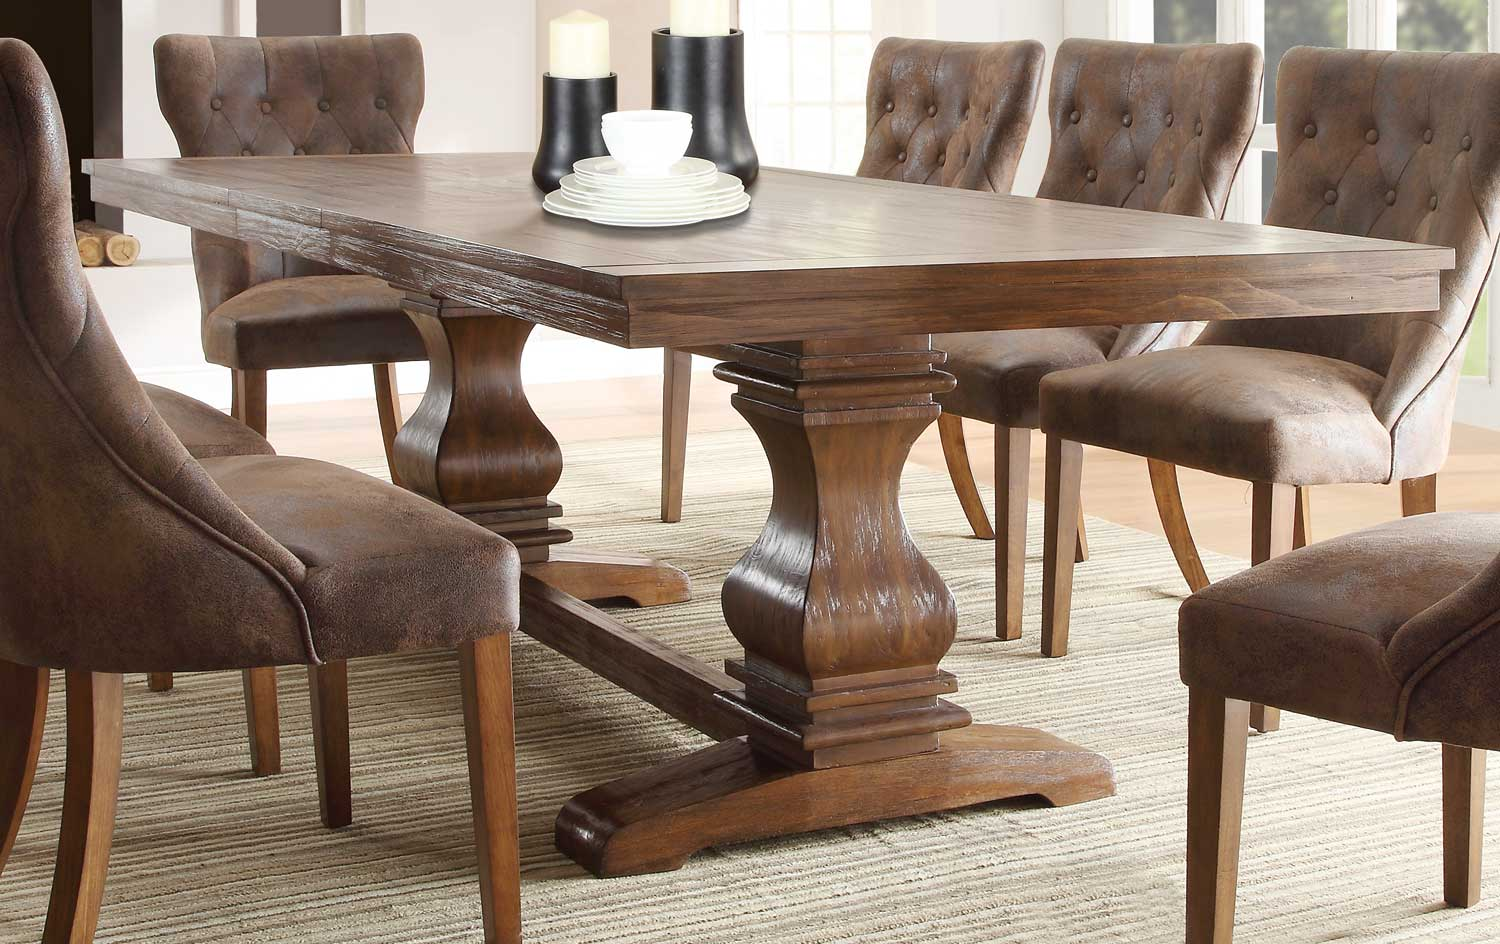 Homelegance marie louise dining set rustic oak brown for Dining table and chairs